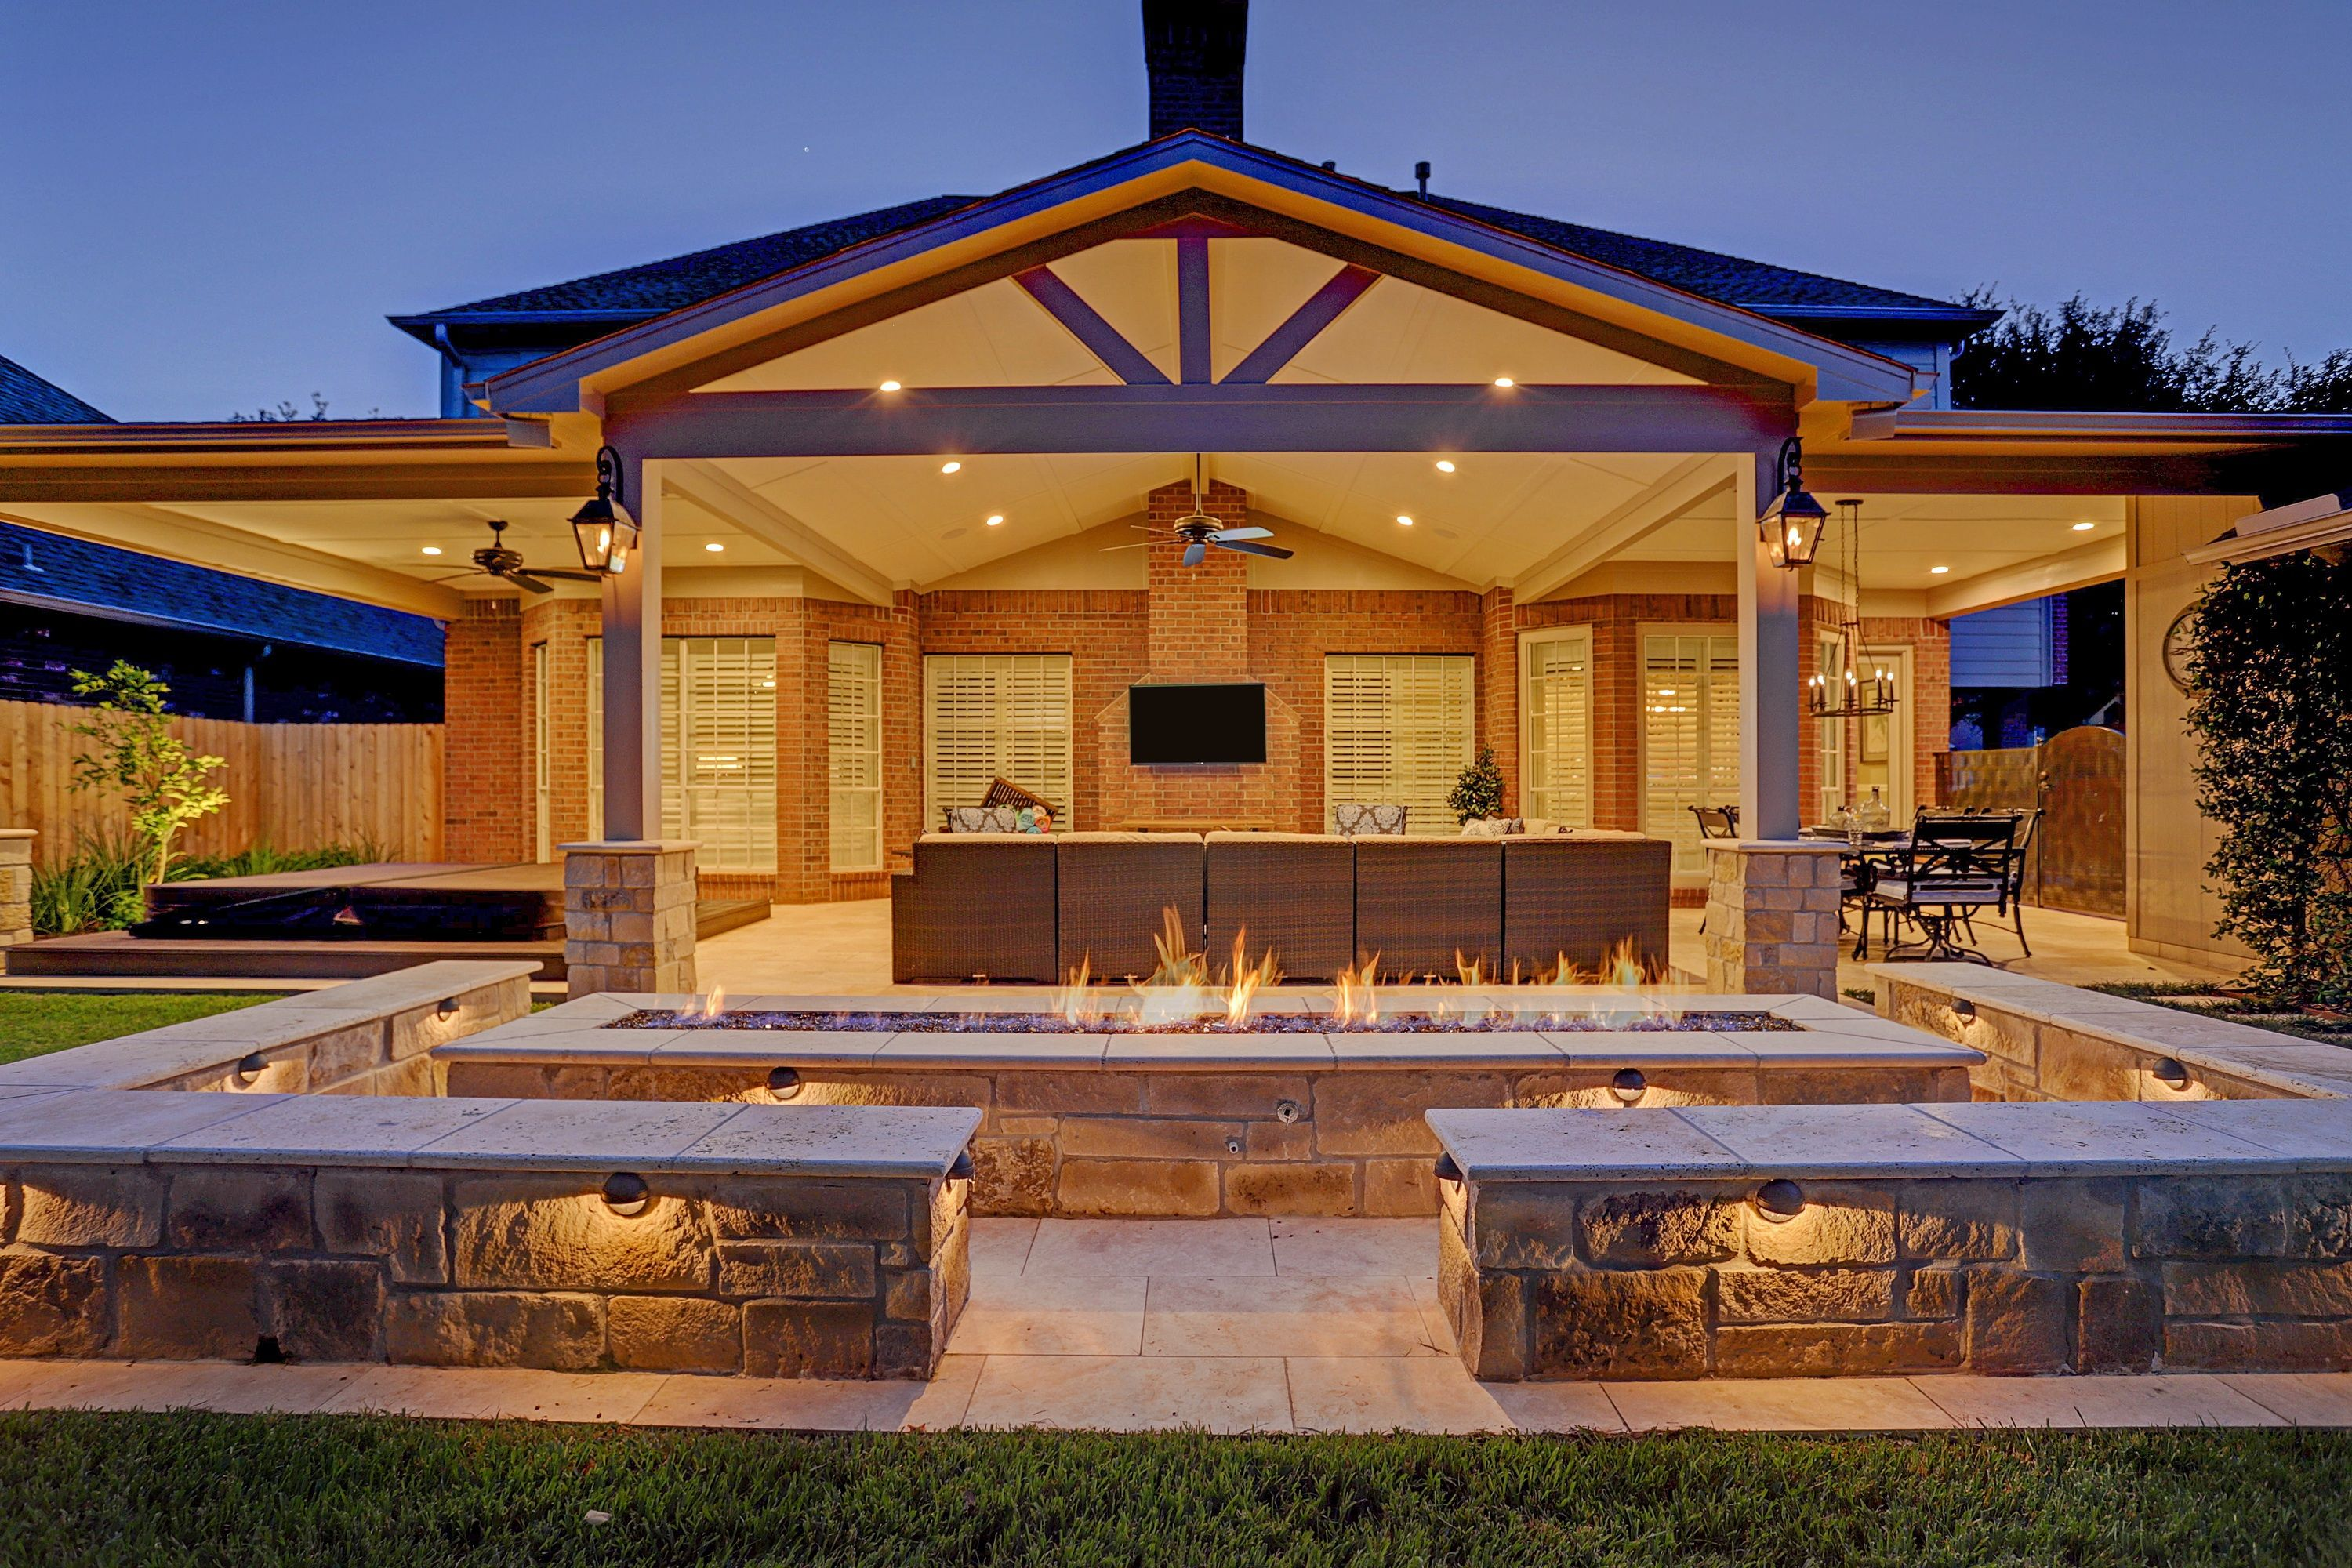 Gable Truss Firepit Outdoor Living Sitting Wall Outdoor Fireplace Patio Cover Attached Patio Cover Pergola Covered Backyard Covered Patio